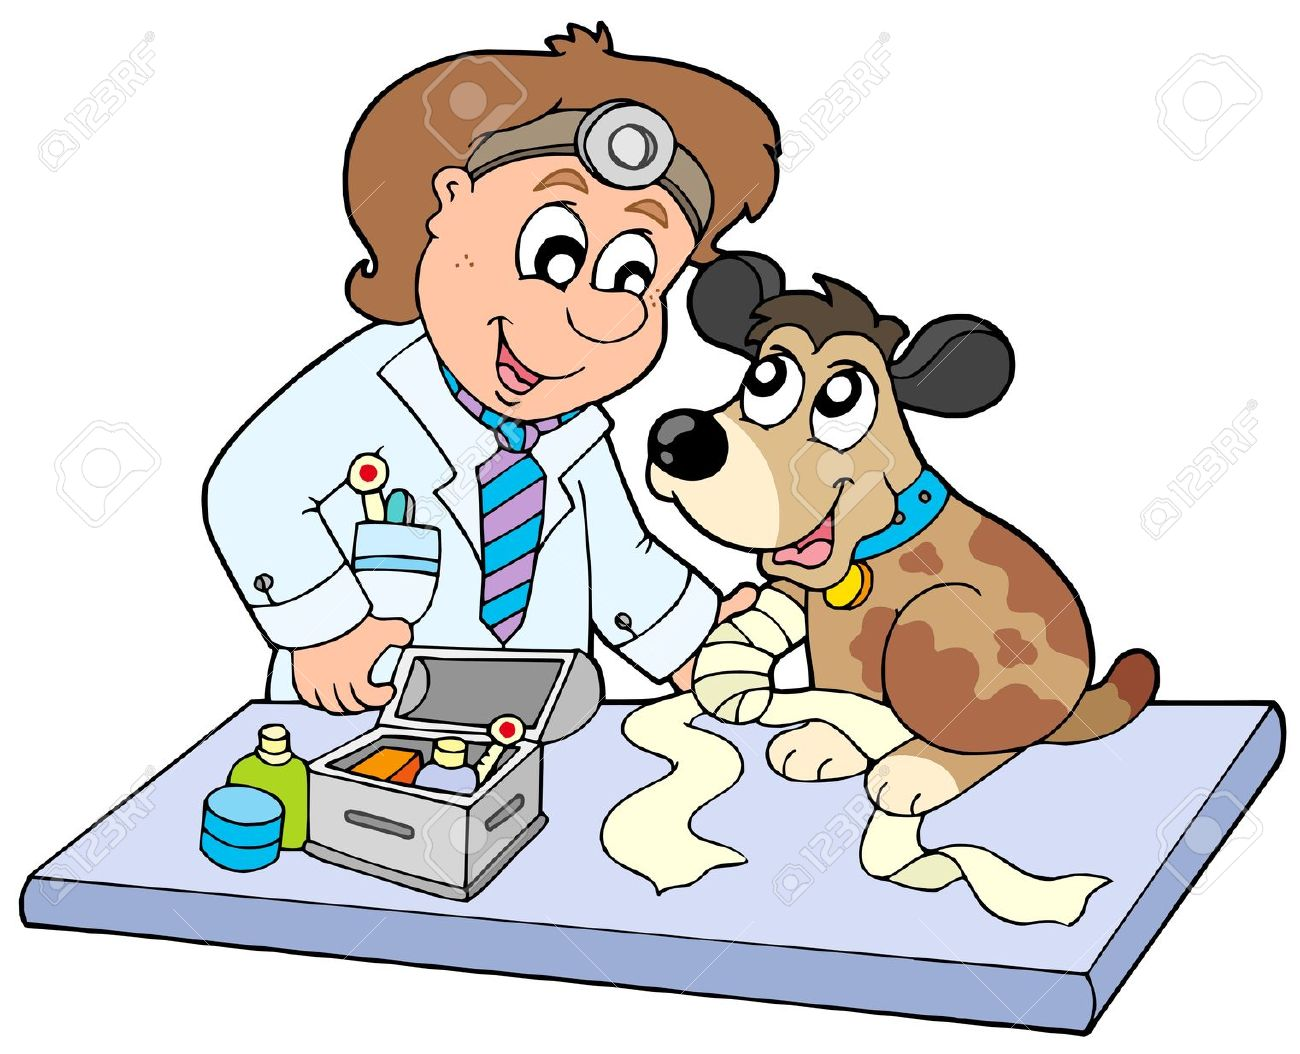 Veterinarian Clipart Fort. 6370096 Dog w-Veterinarian Clipart Fort. 6370096 Dog with sick paw at .-10